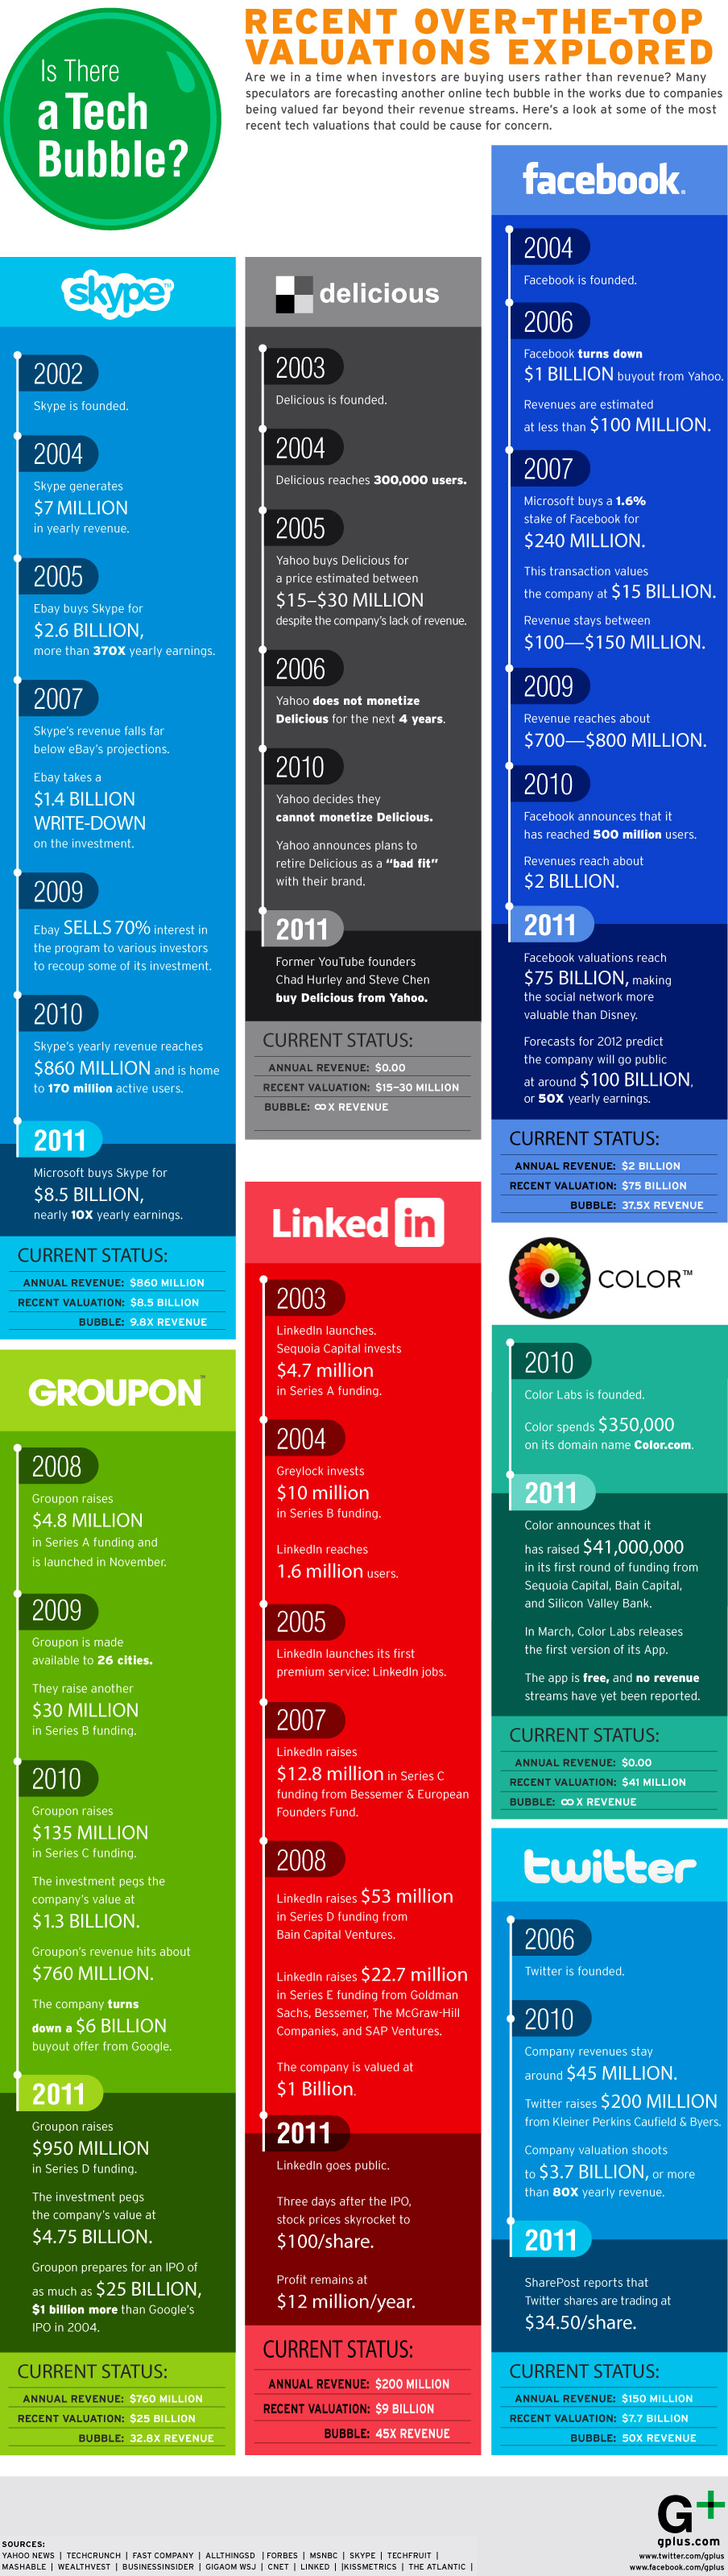 social-media-valuations-infographic-1000